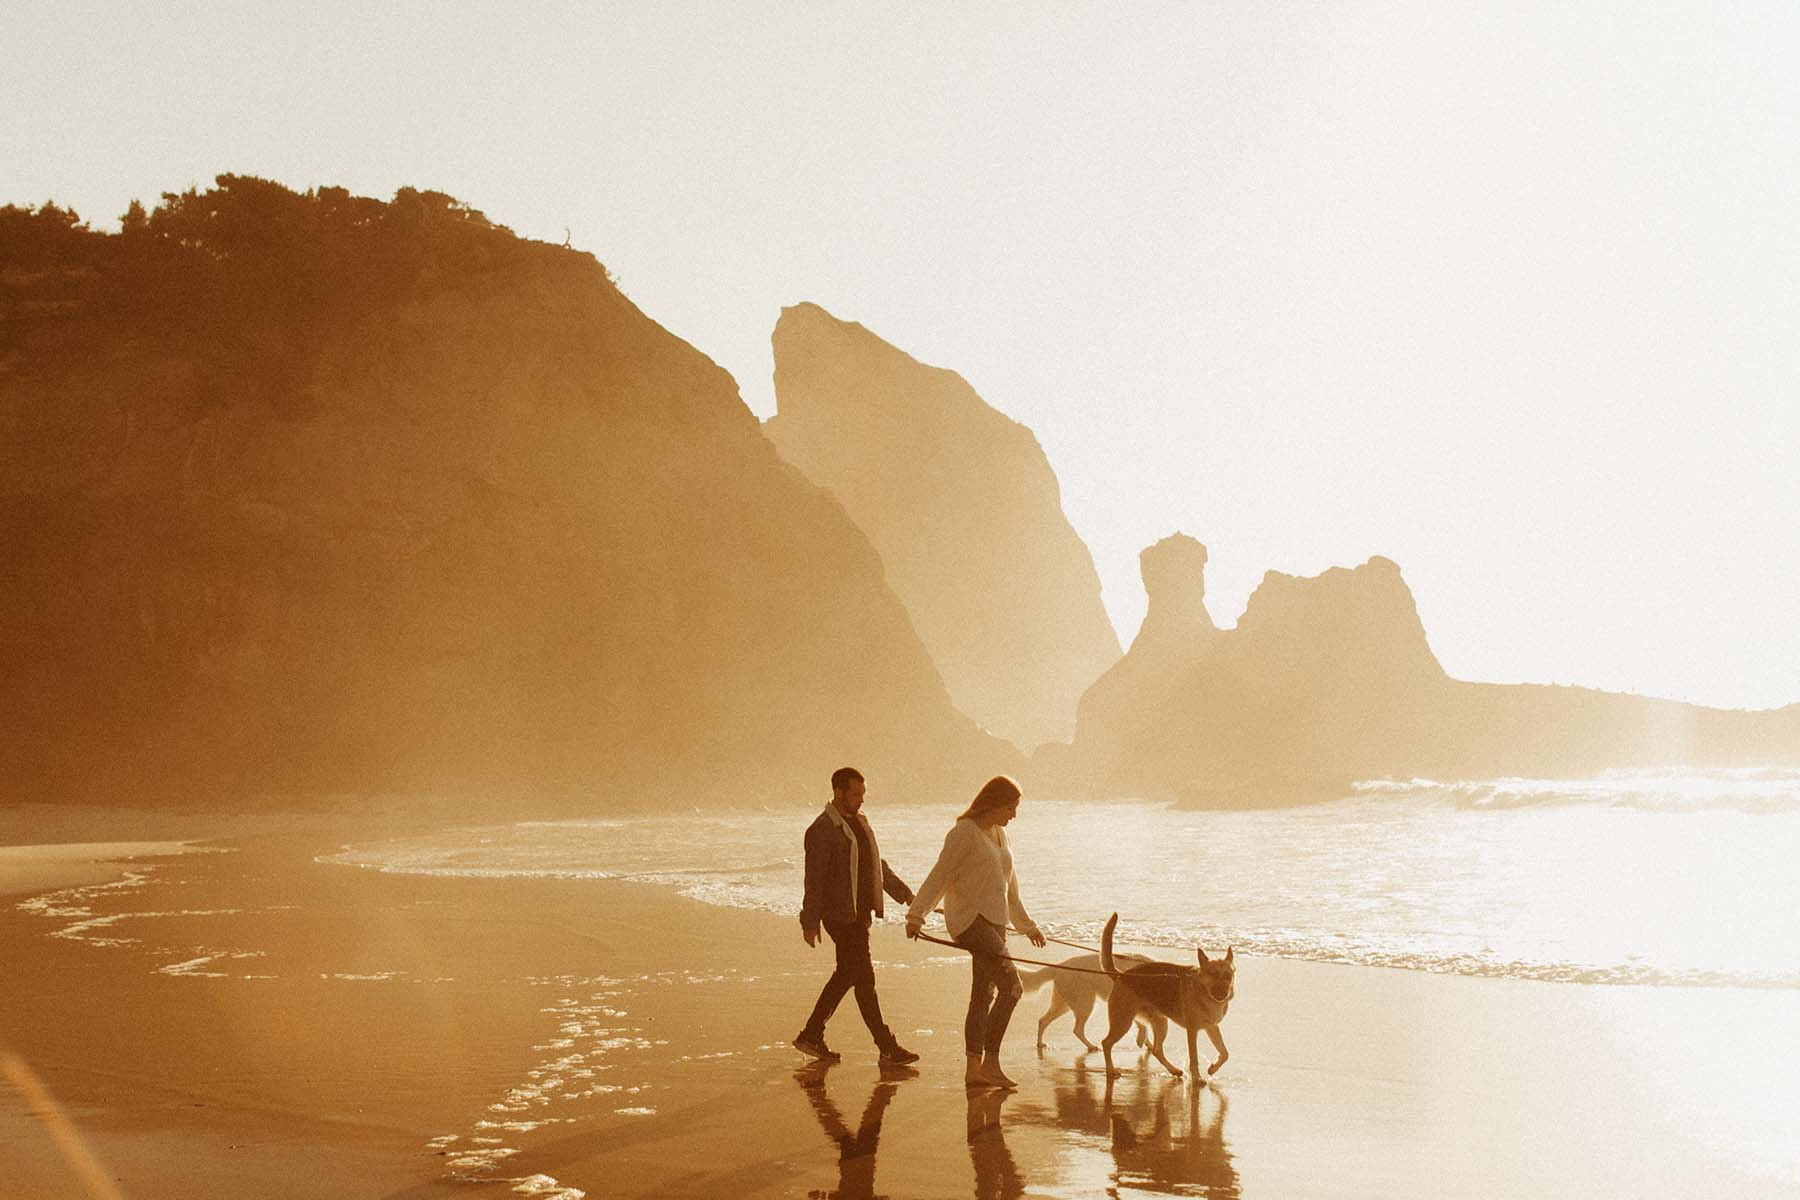 An unedited photo of a woman and a man walk with their dogs at the beach at sunset time.